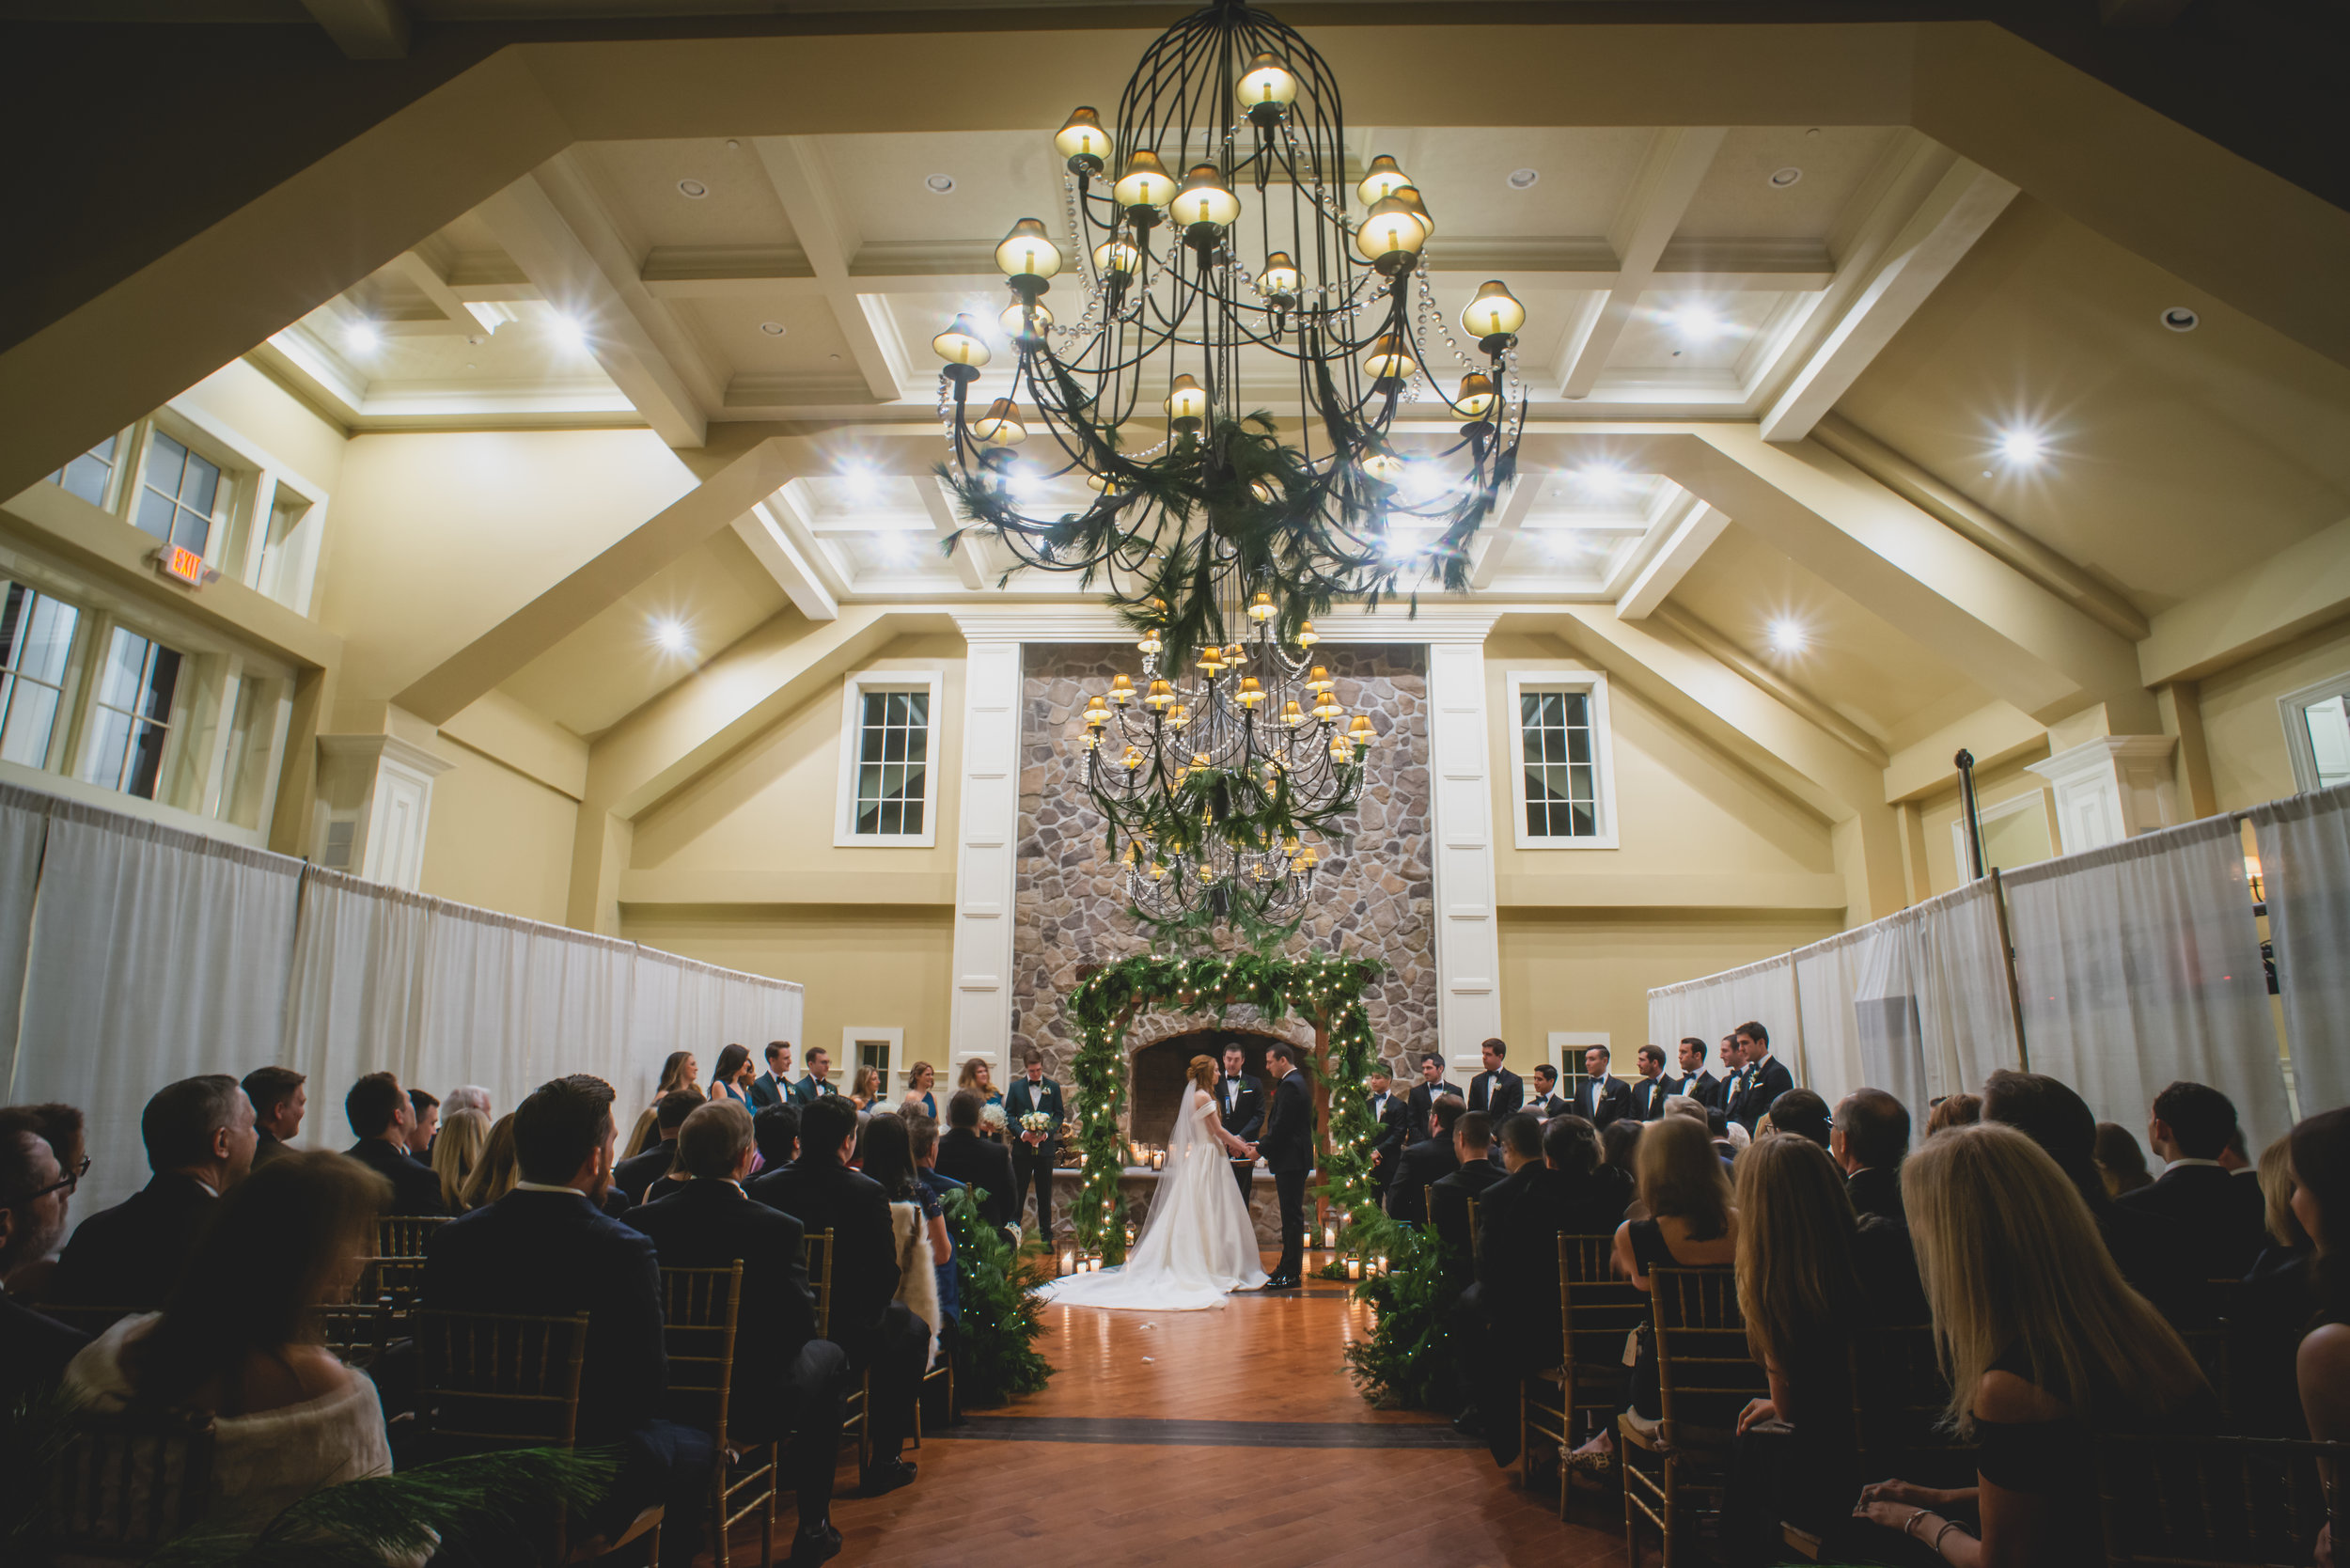 Whitehouse Station, NJ Wedding Venue - The Ryland Inn - Wedding Ceremony Photography